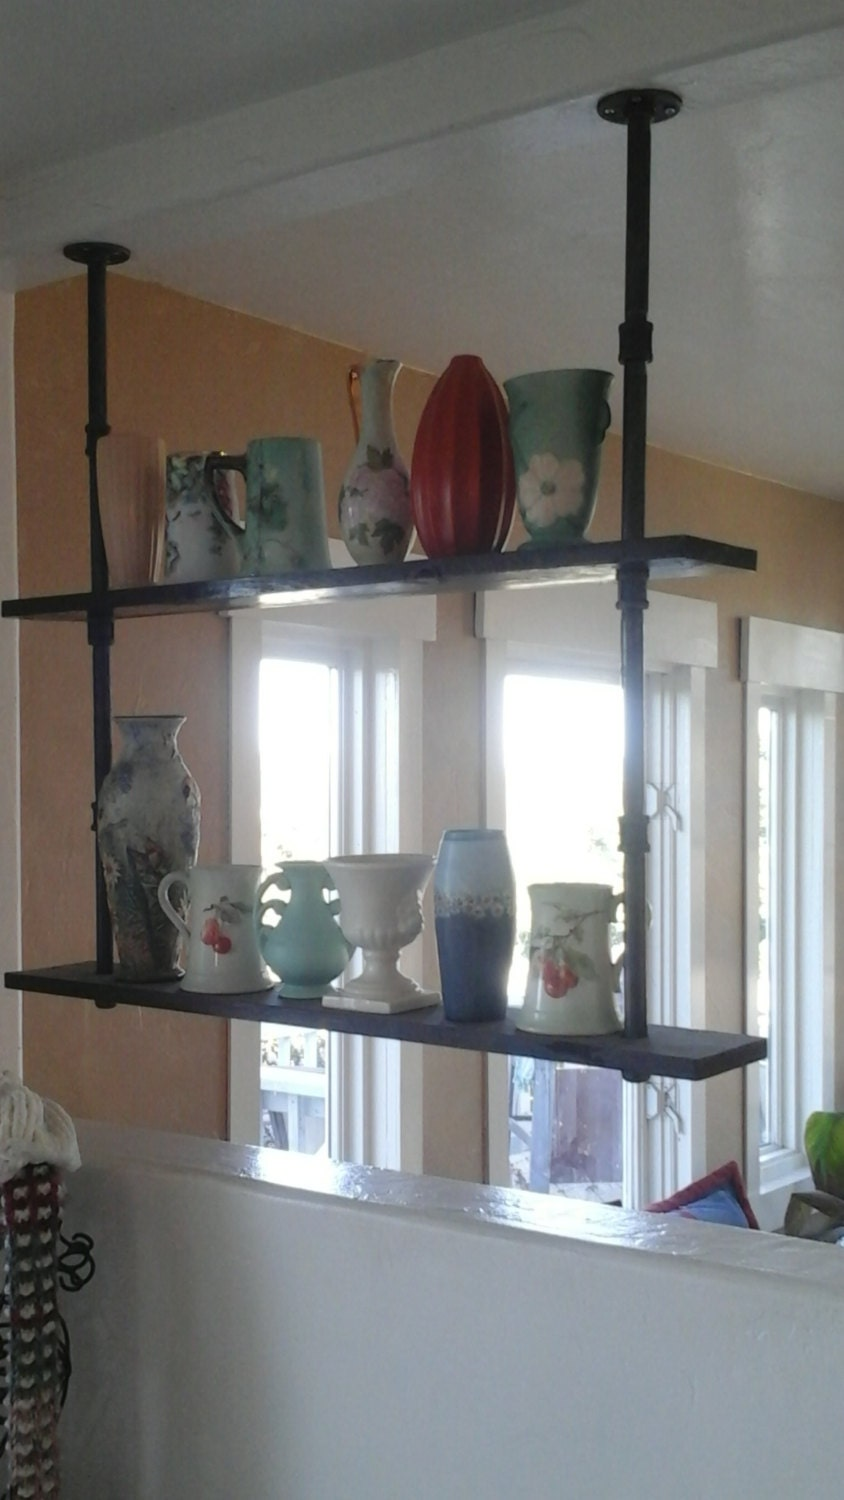 steampunk shelves reclaimed wood and pipes shelf industrial. Black Bedroom Furniture Sets. Home Design Ideas